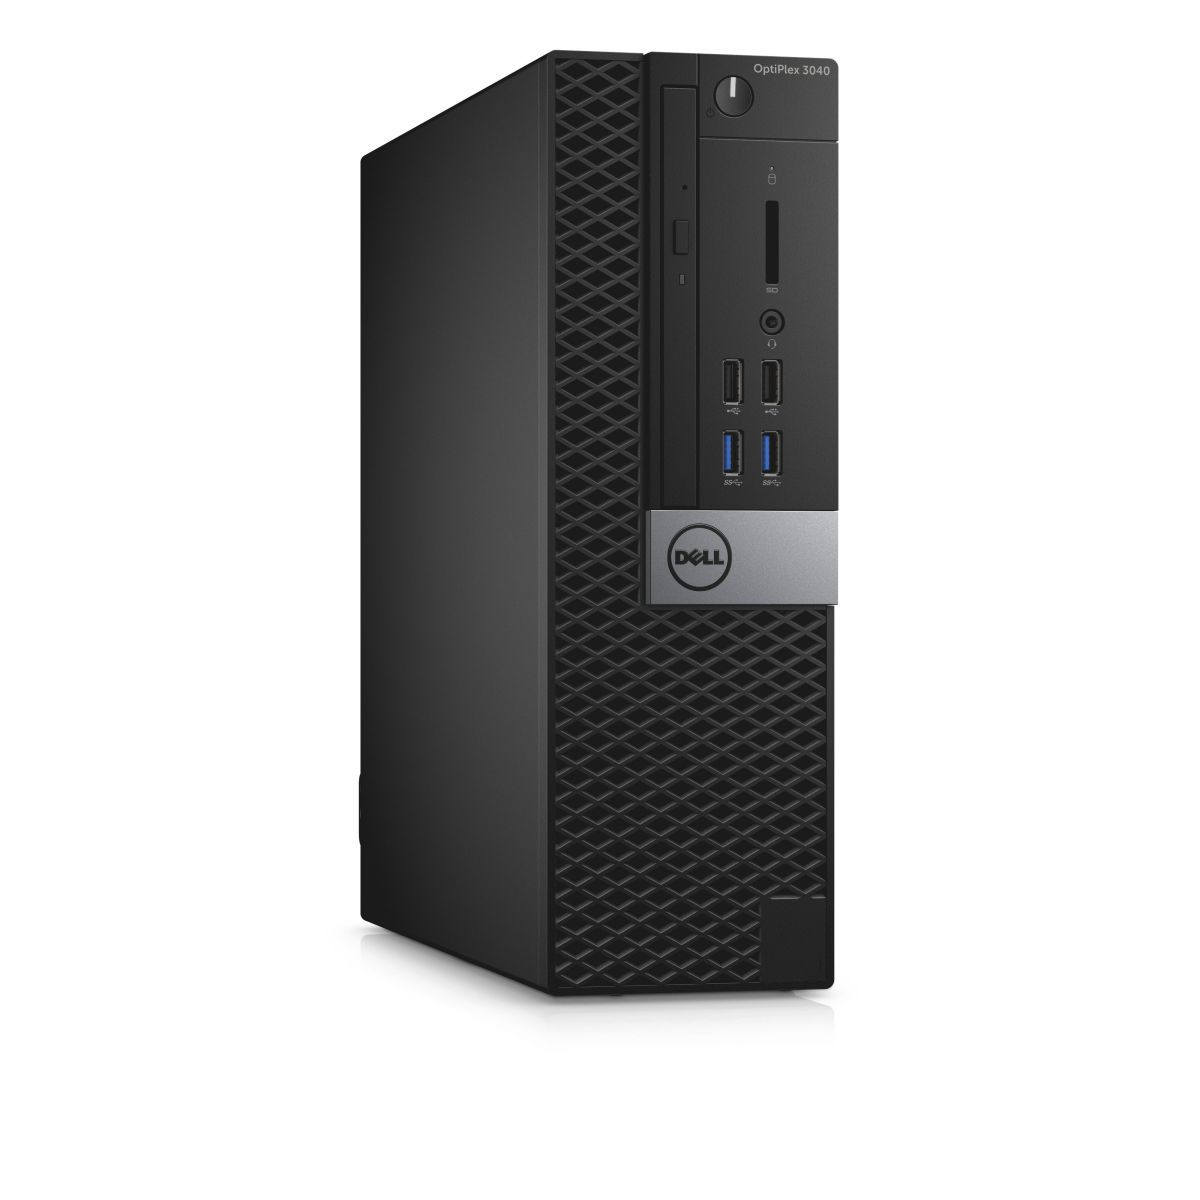 Ver DELL OptiPlex 3040 CDC88 i5 6500 SFF Negro